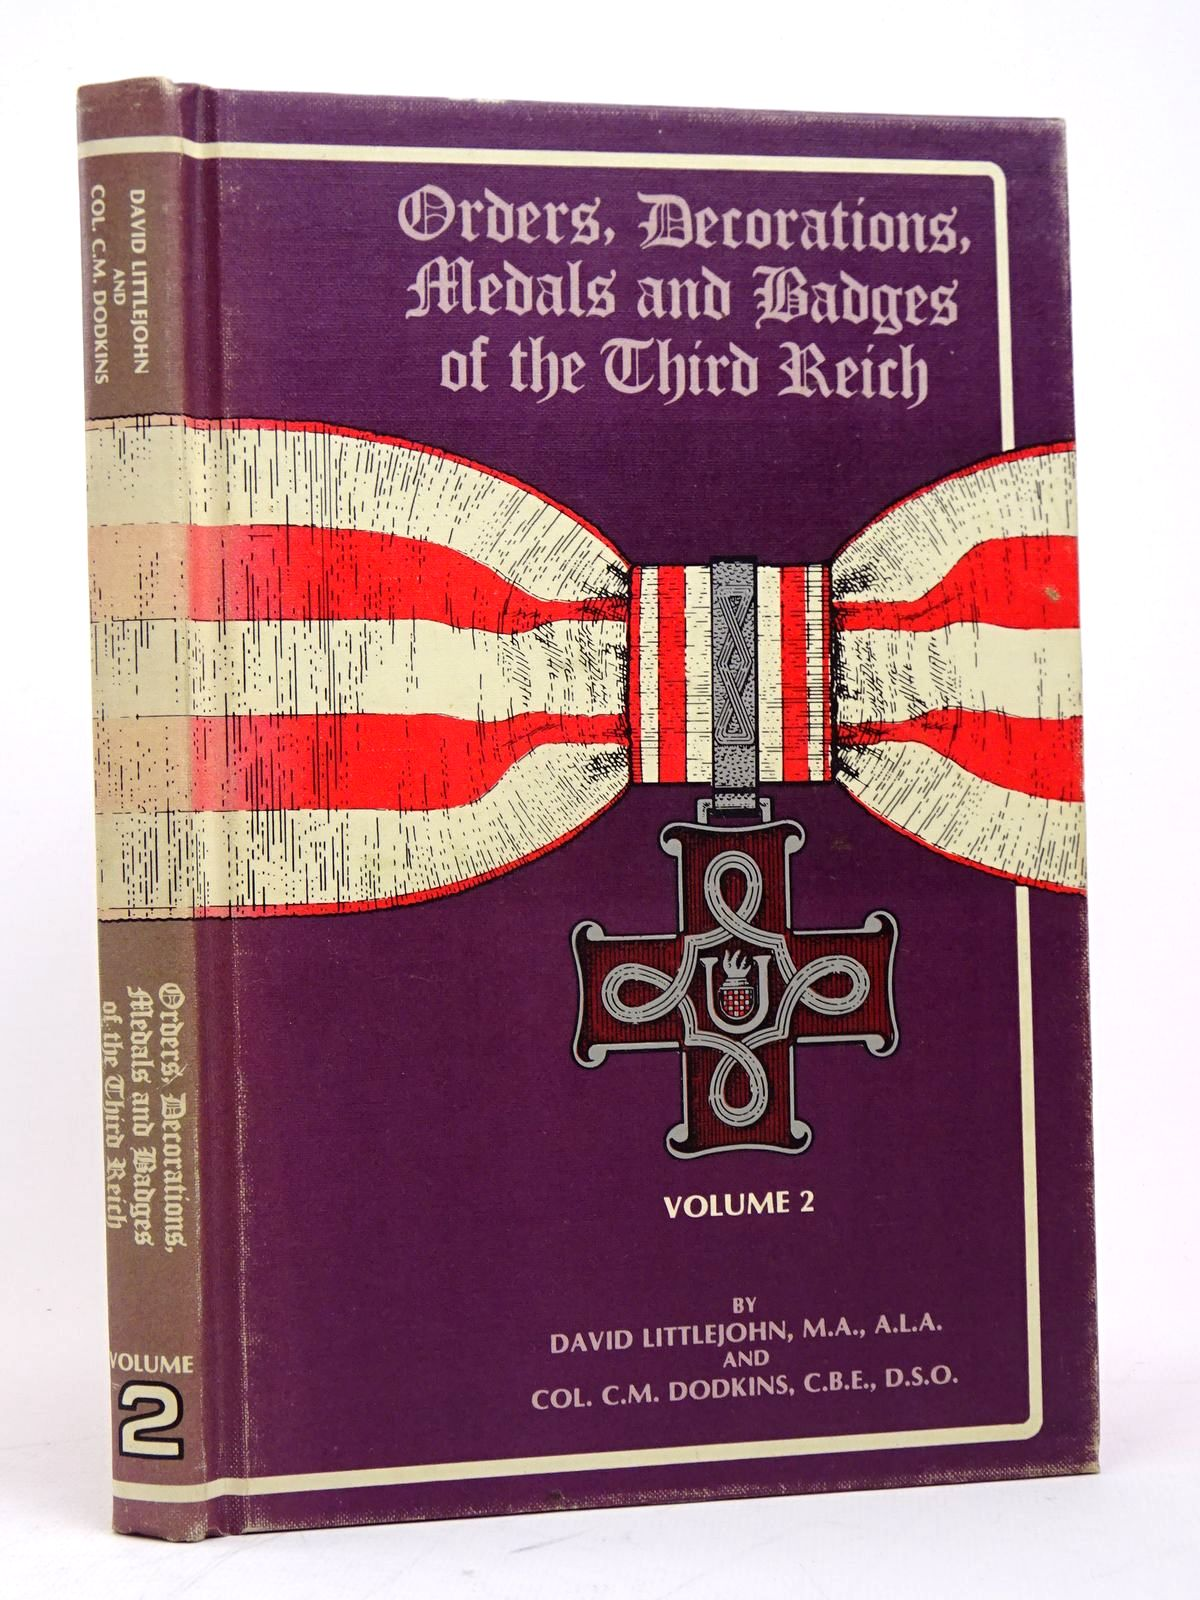 Photo of ORDERS, DECORATIONS, MEDALS AND BADGES OF THE THIRD REICH VOLUME 2 written by Littlejohn, David<br />Dodkins, C. published by R. James Bender (STOCK CODE: 1817819)  for sale by Stella & Rose's Books